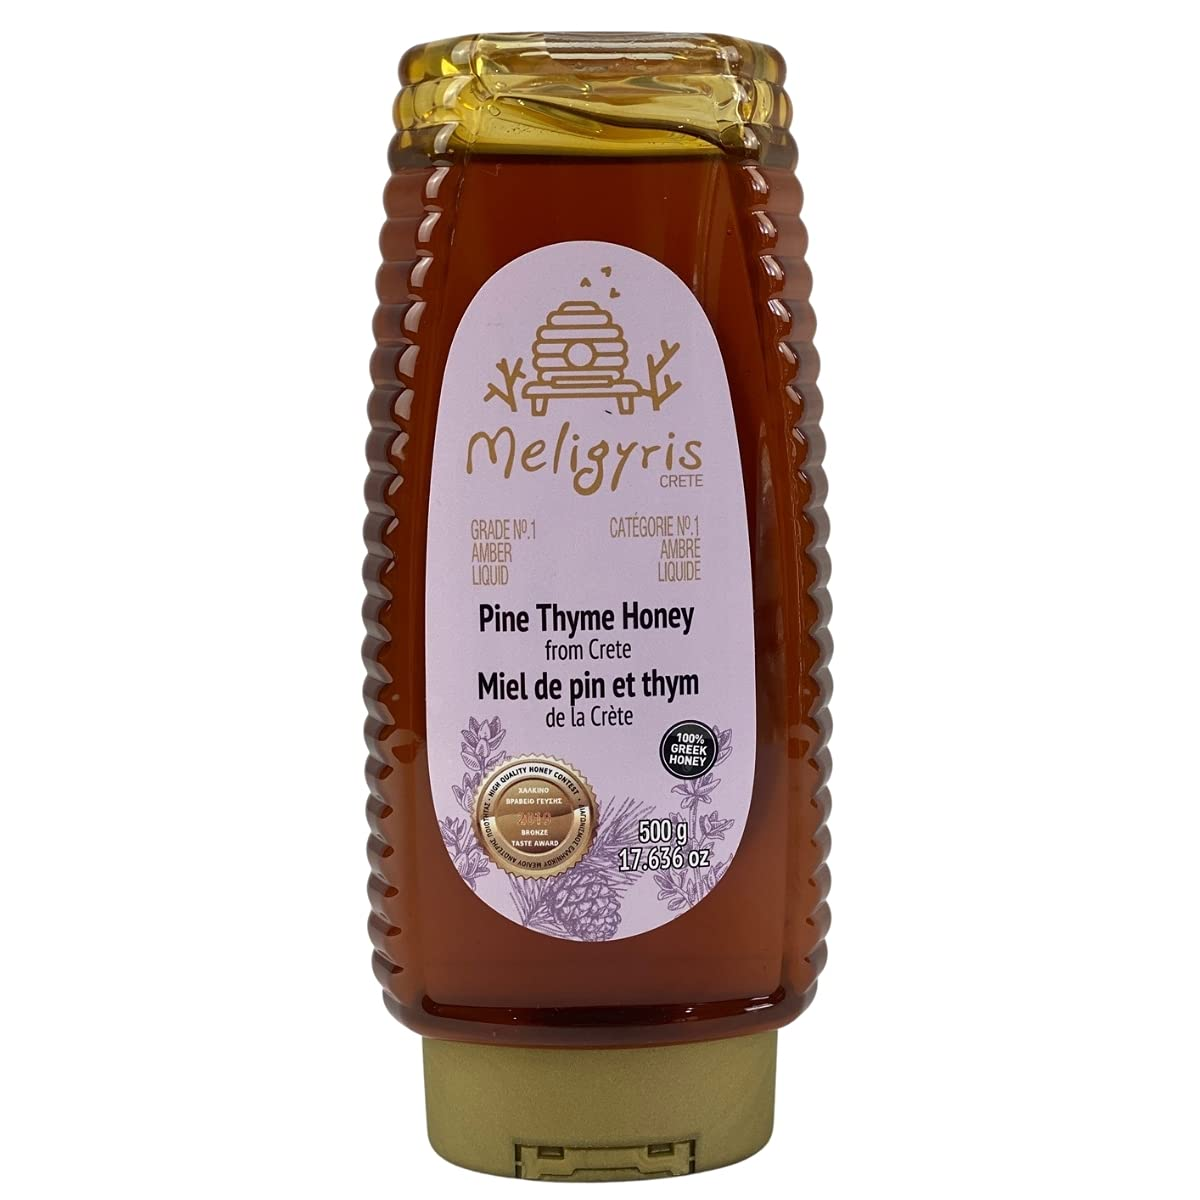 Meligyris Pure Pine Thyme High quality new Honey from 100% Raw Fashion Crete - and